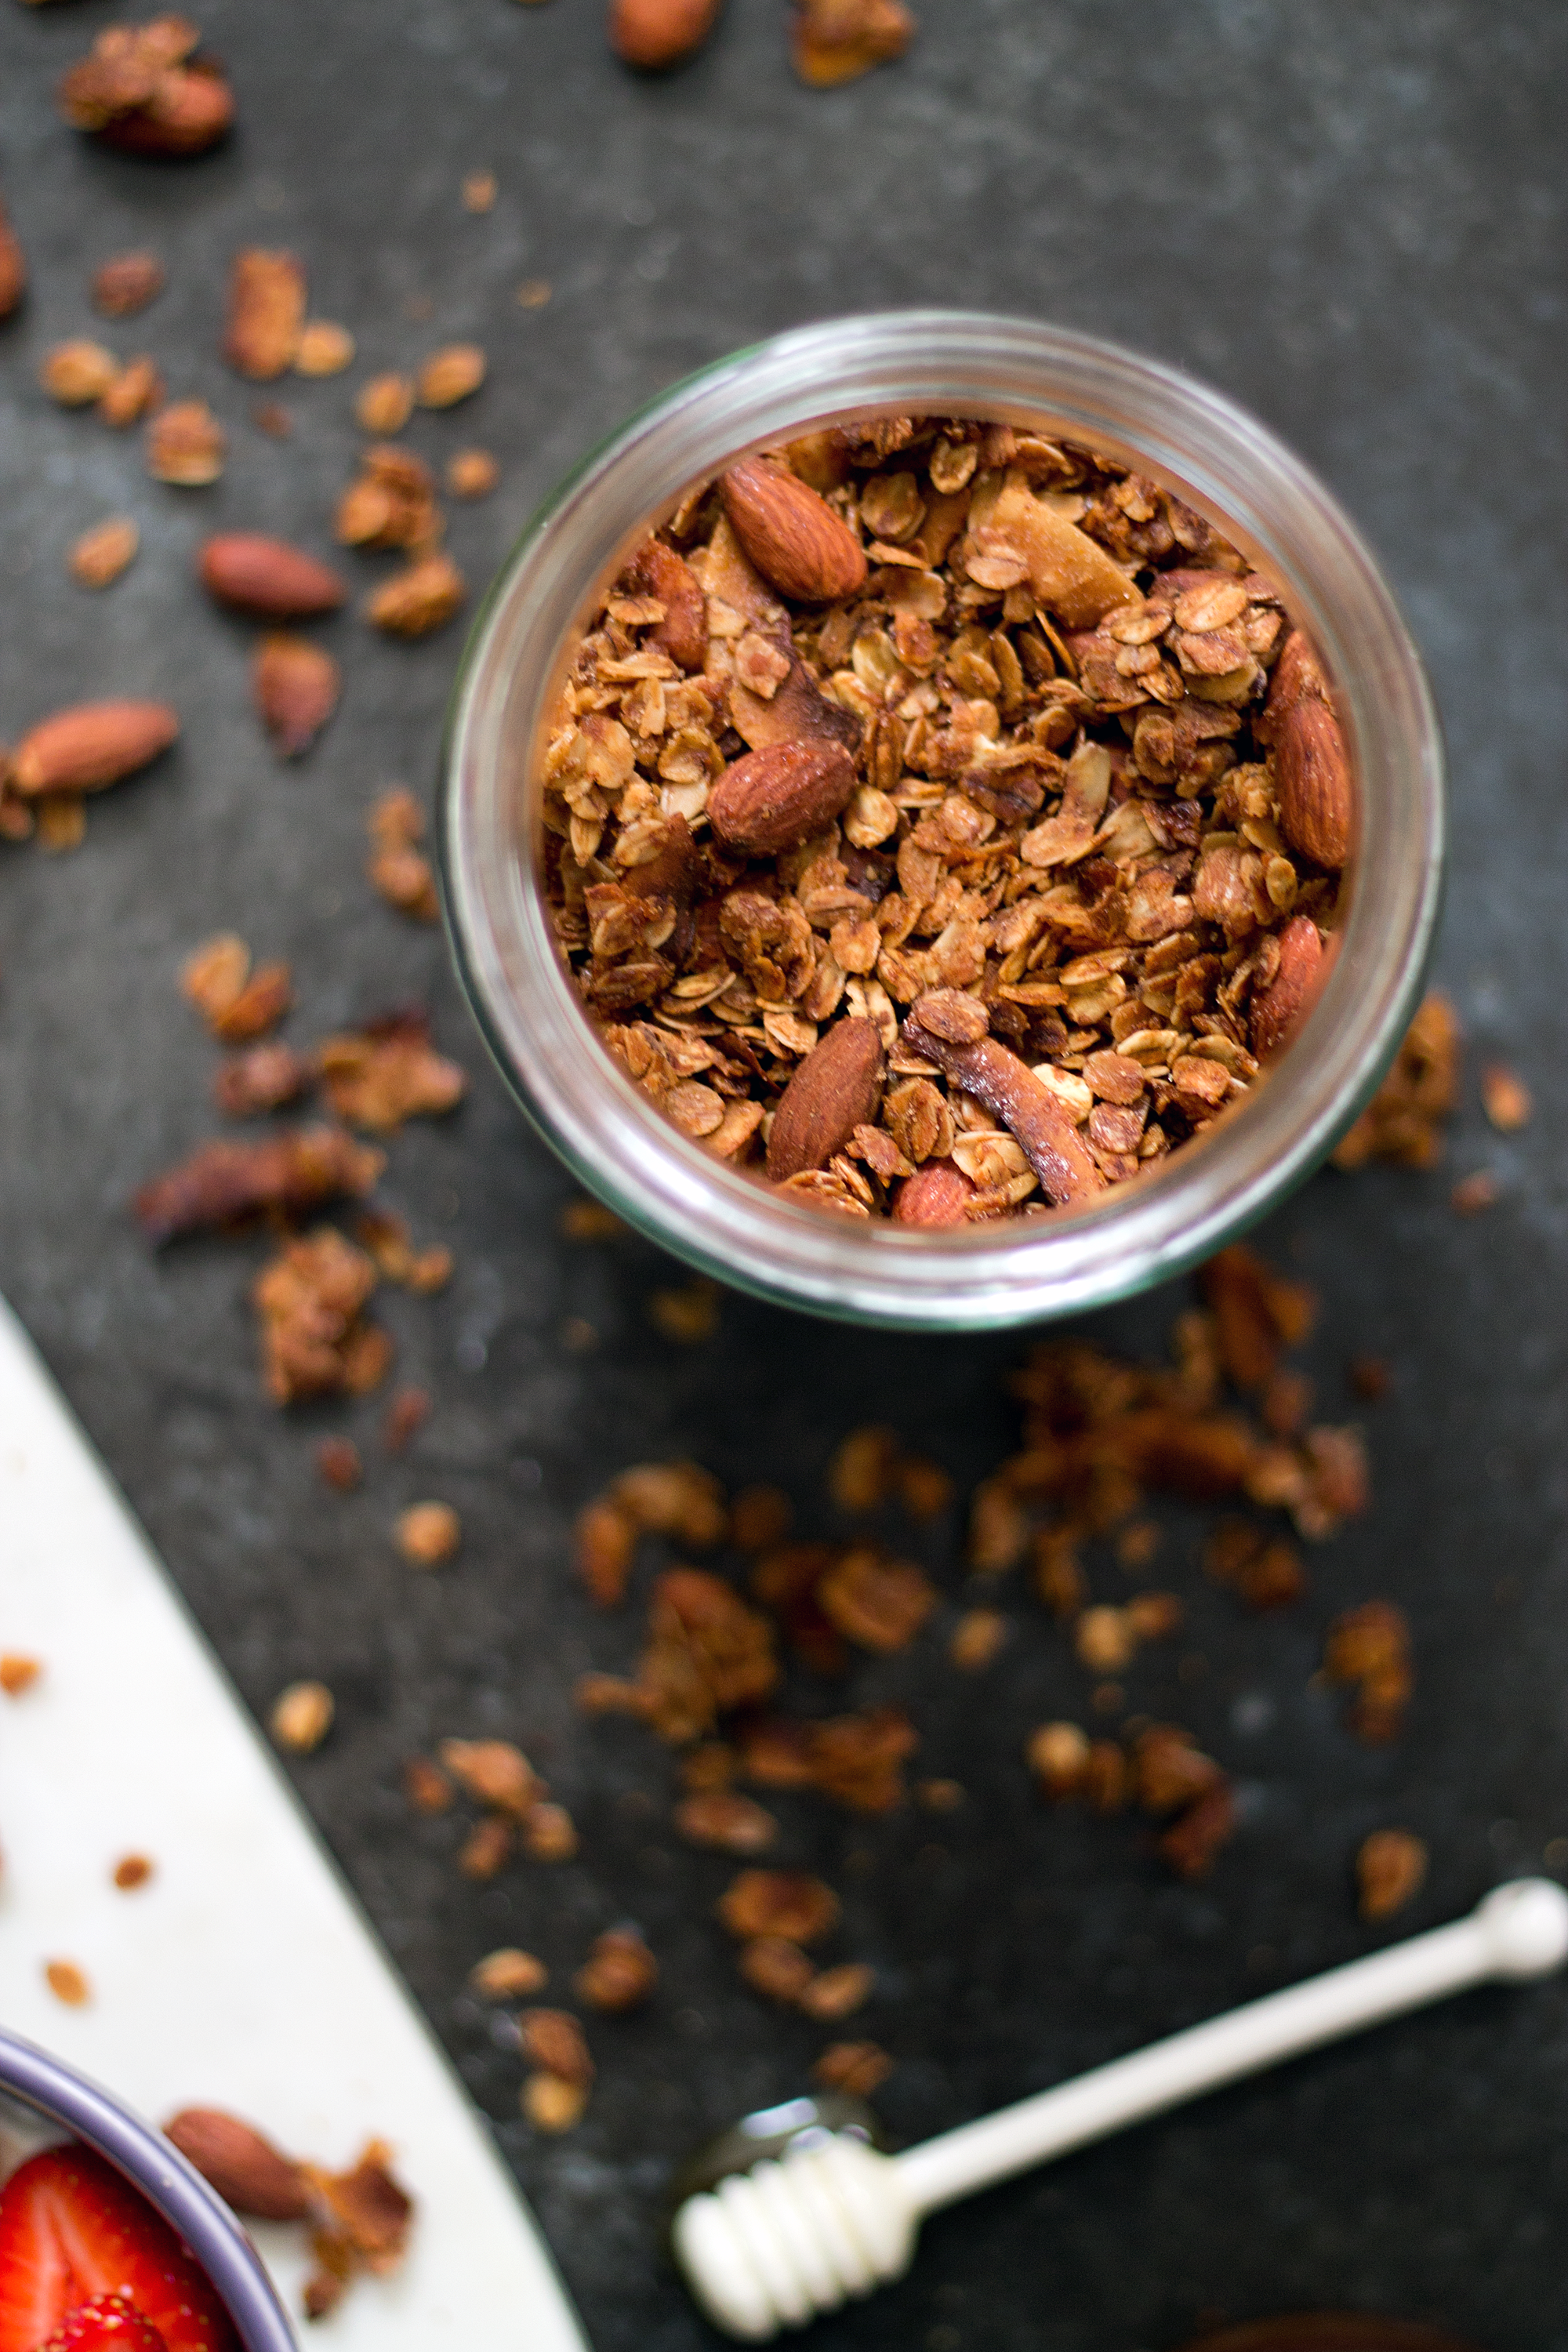 Simple Granola with cinnamon, almonds, and coconut. The Unusually Lovely Blog.